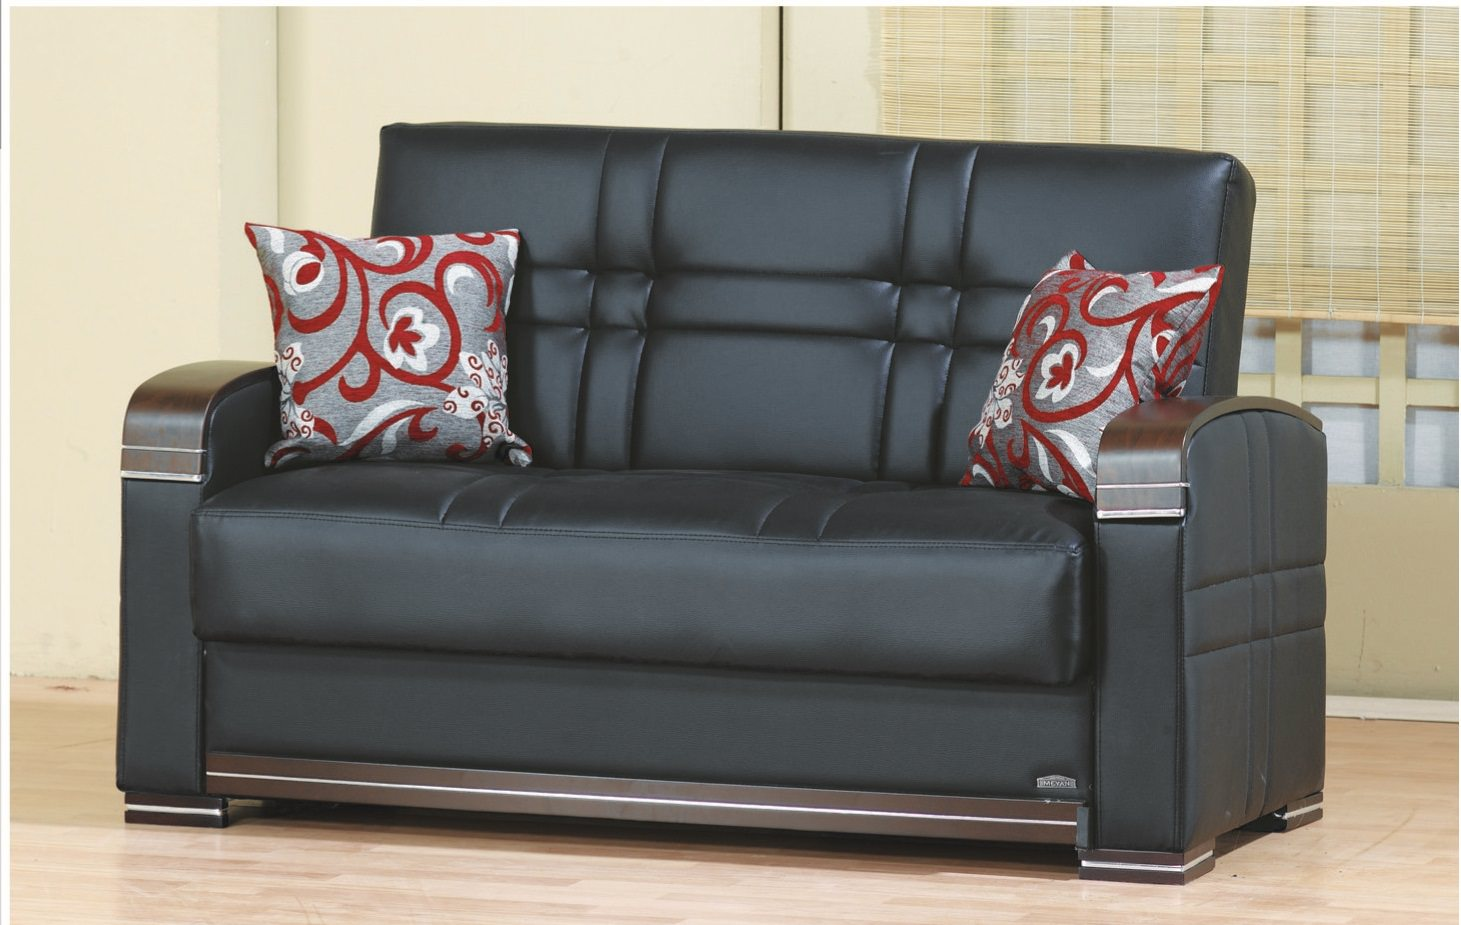 Magnificent Bronx Black Leather Loveseat By Empire Furniture Usa Gamerscity Chair Design For Home Gamerscityorg